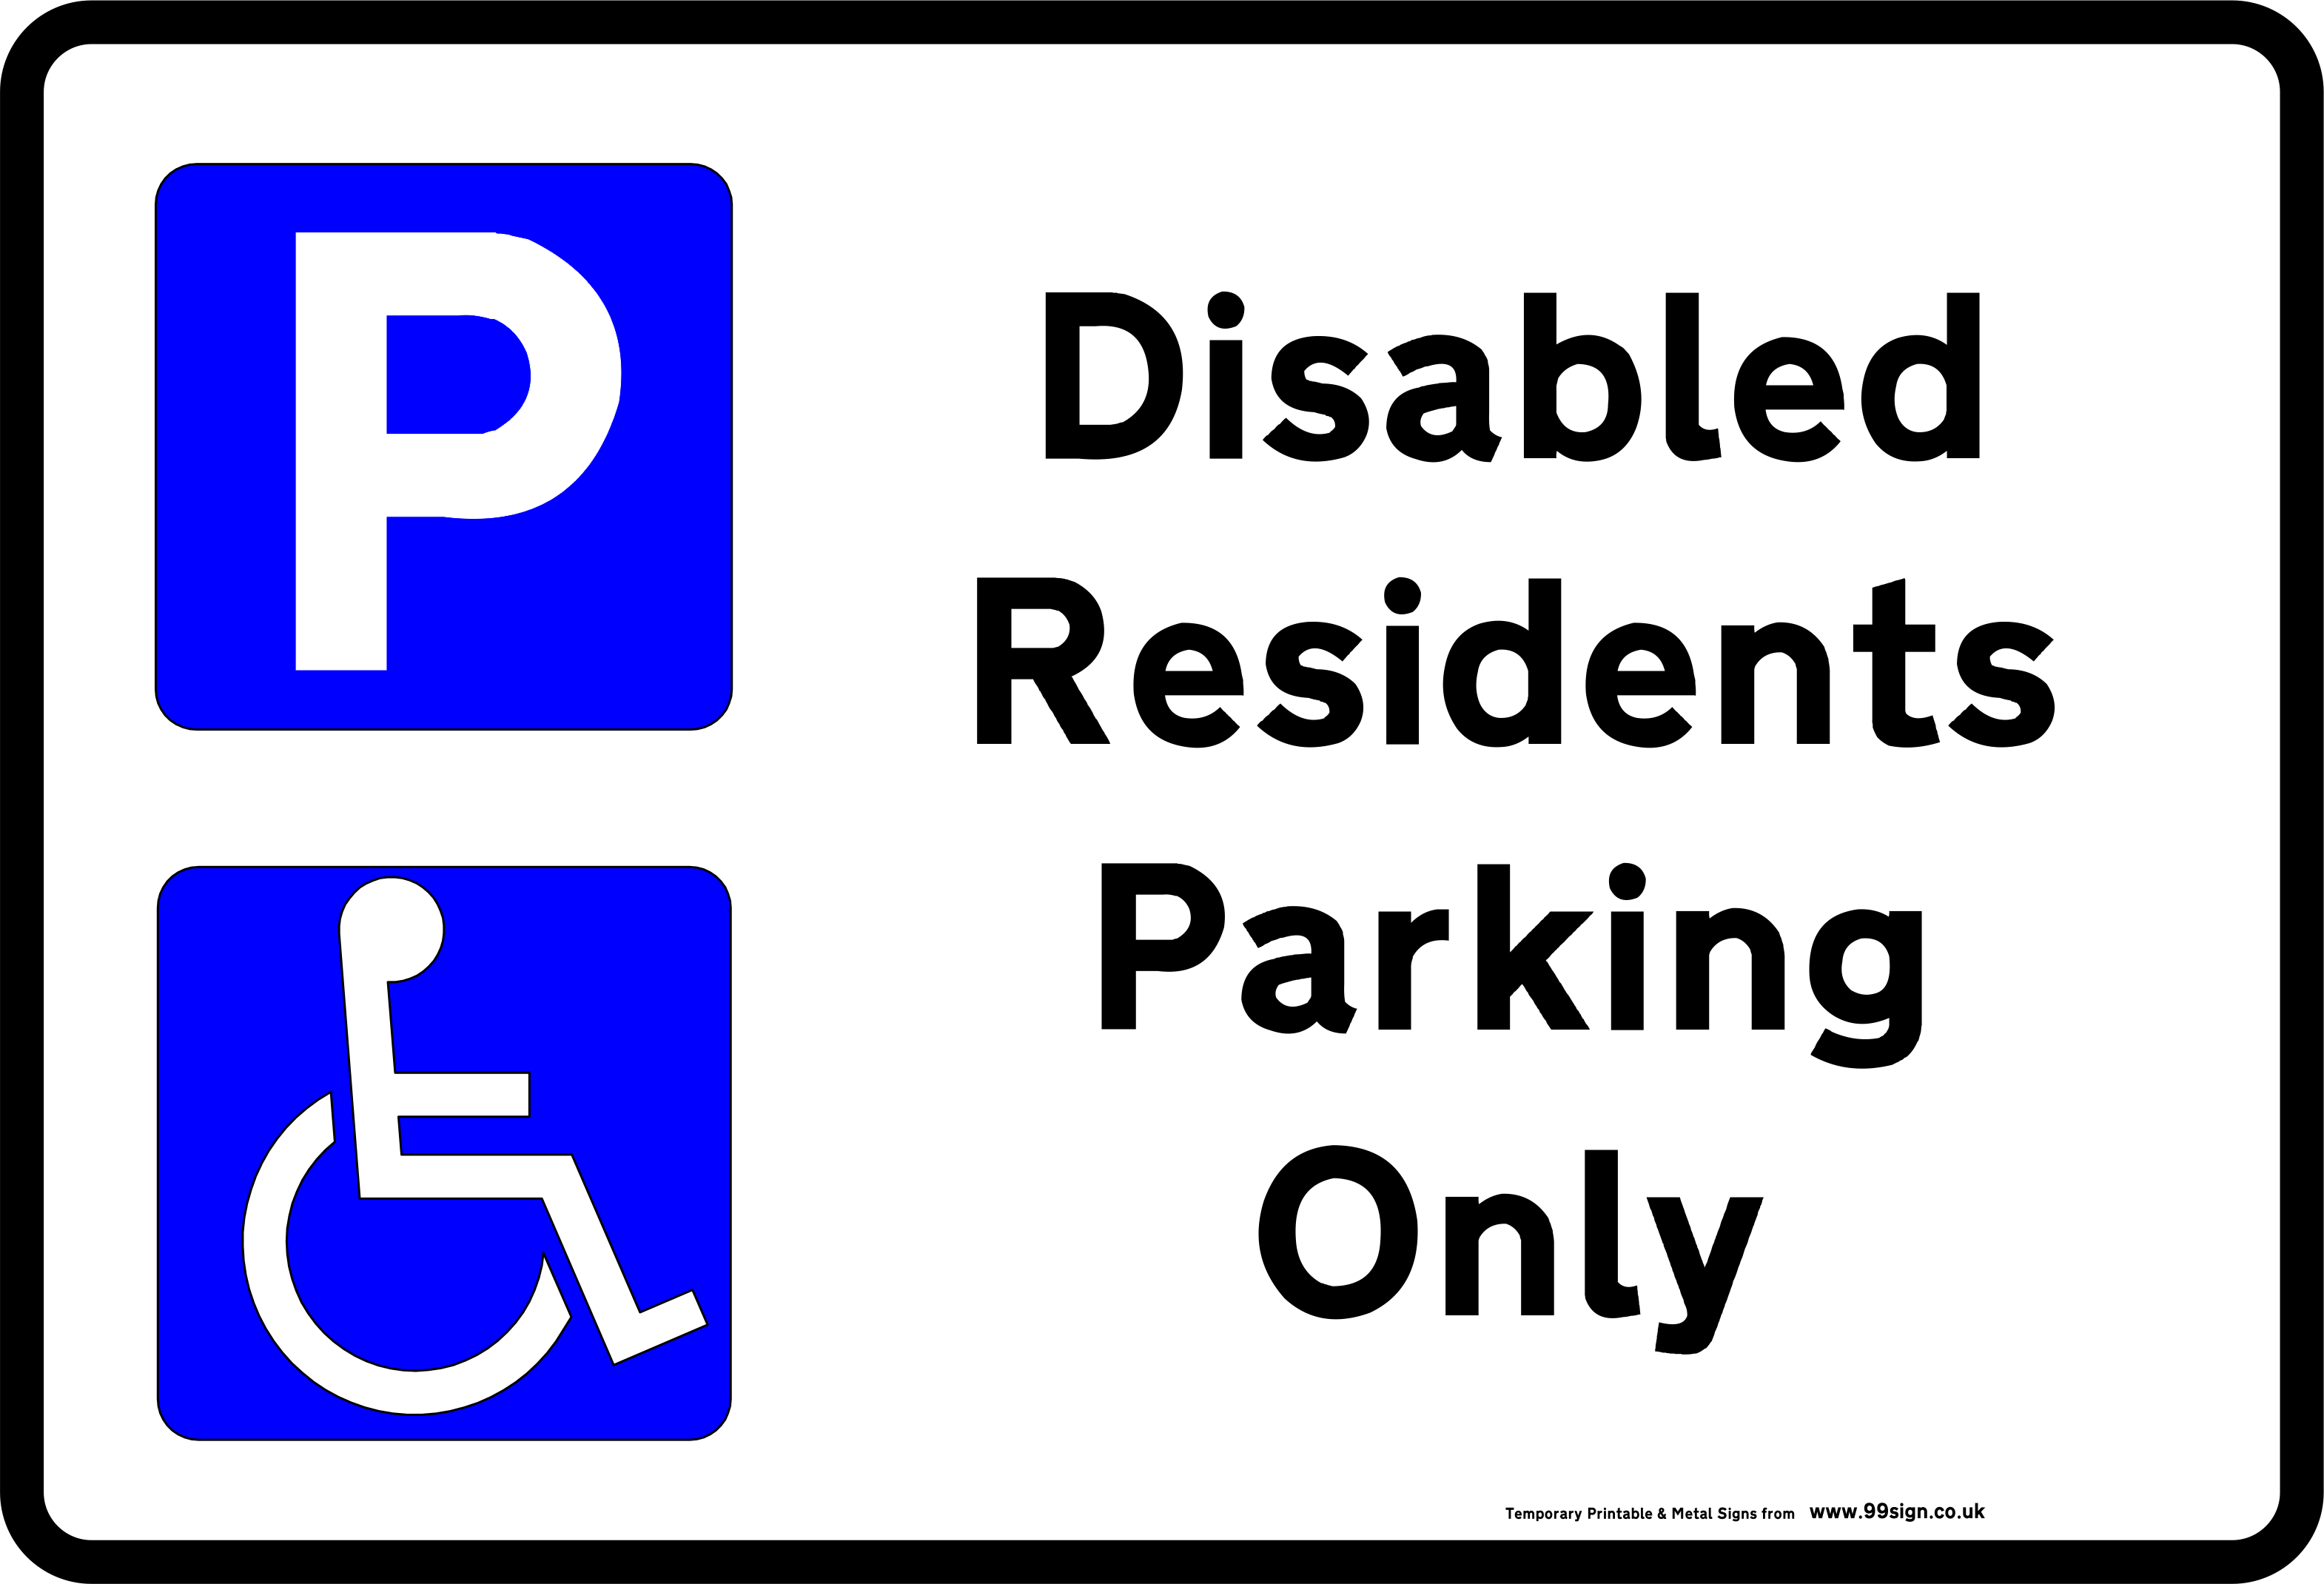 Car parking clipart clip art royalty free download Printable Disabled Parking Sign free template for Residents clip art ... clip art royalty free download